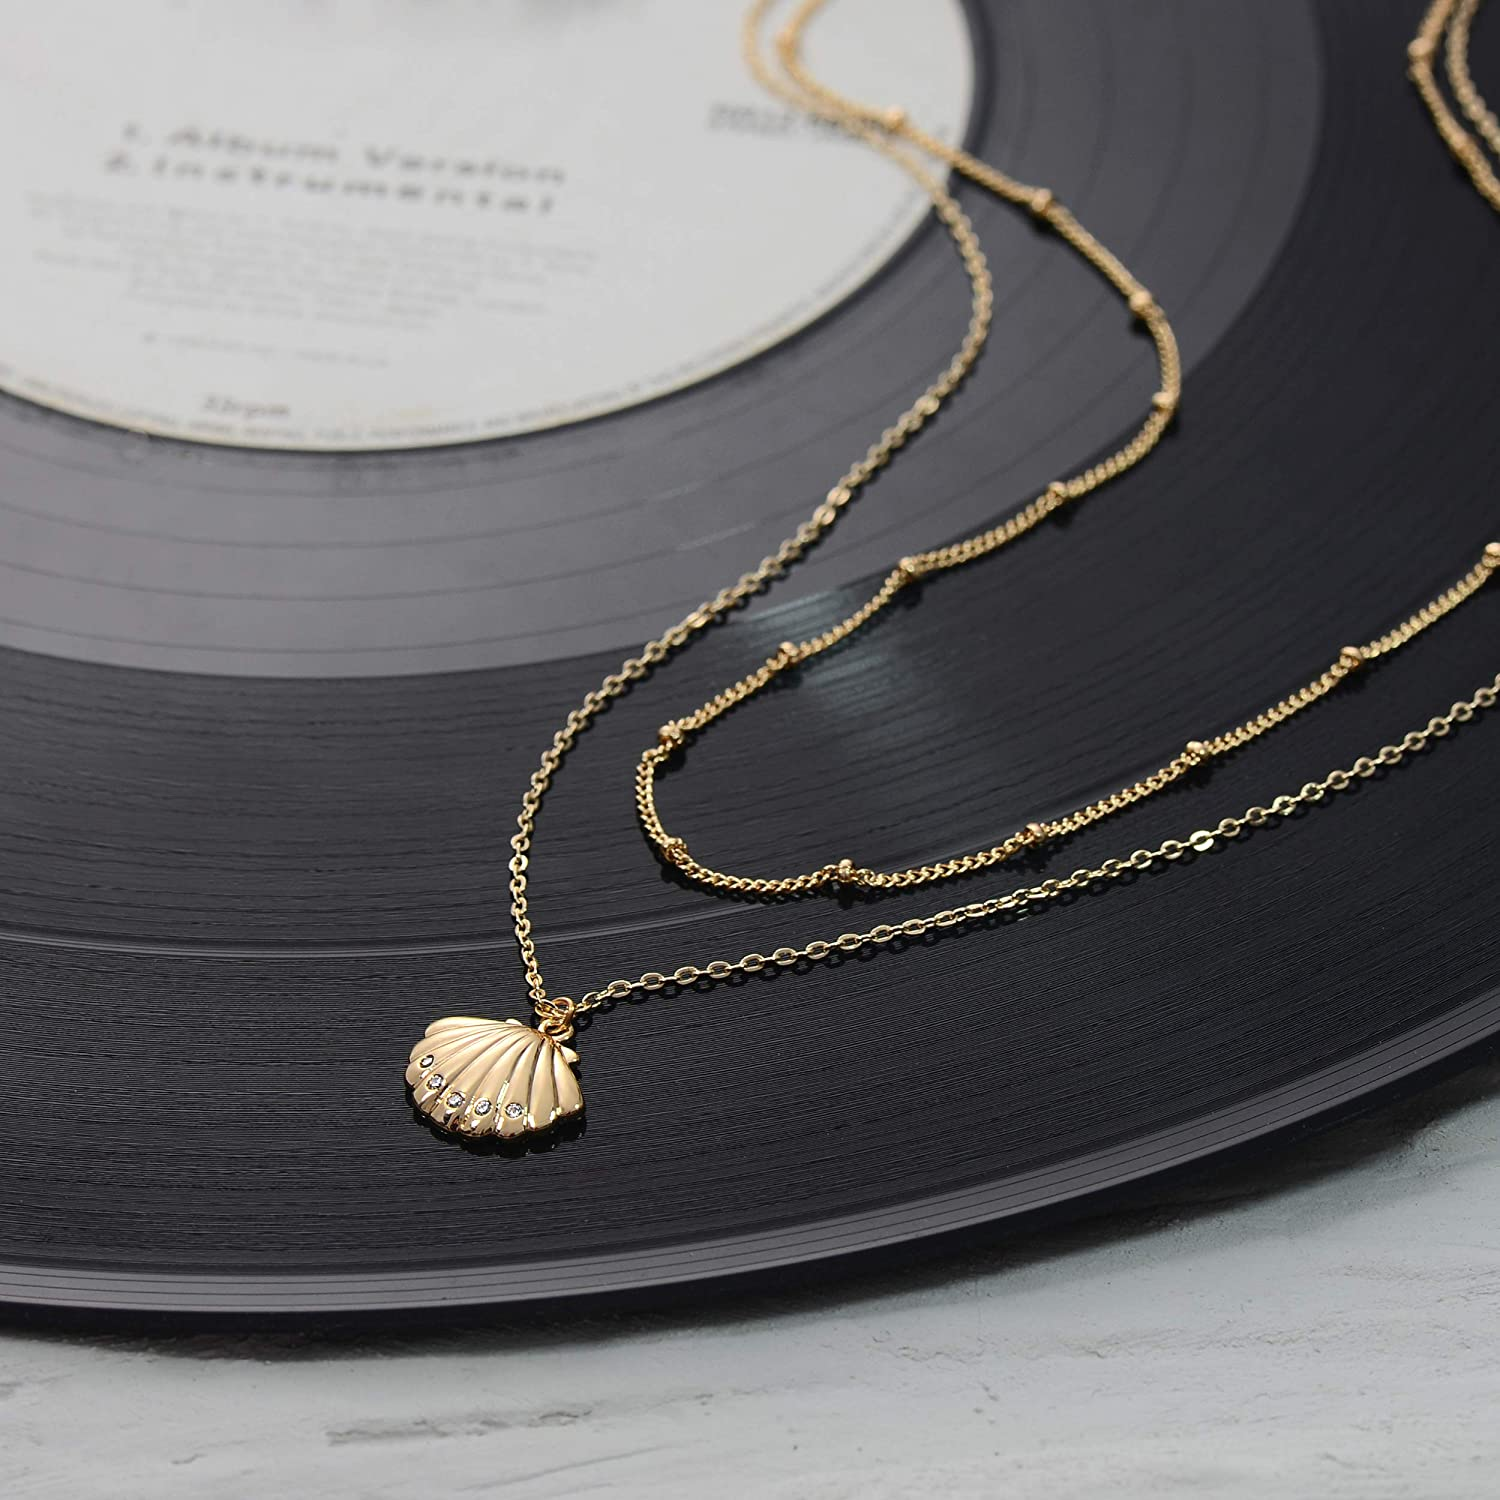 Fettero Coin Necklace Gold Layered Disc Evil Eye Heart Marry Cross Clam Shell Pendant Dainty Chain 14K Gold Plated Minimalist Simple Jewelry for Women